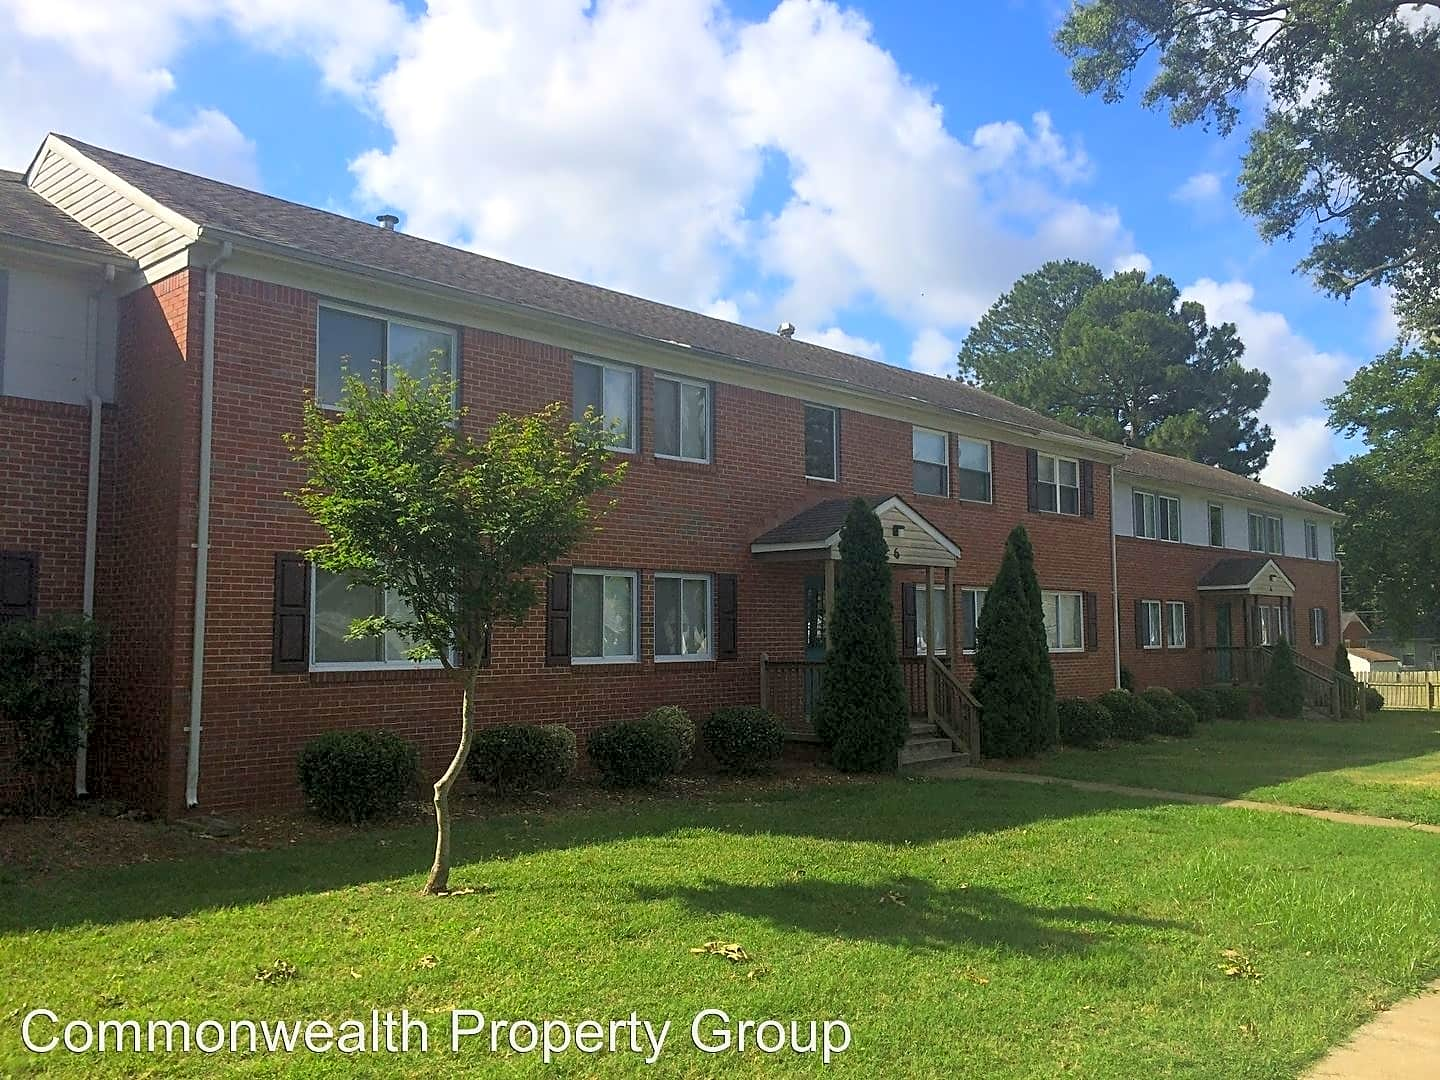 Westhaven Park Apartments